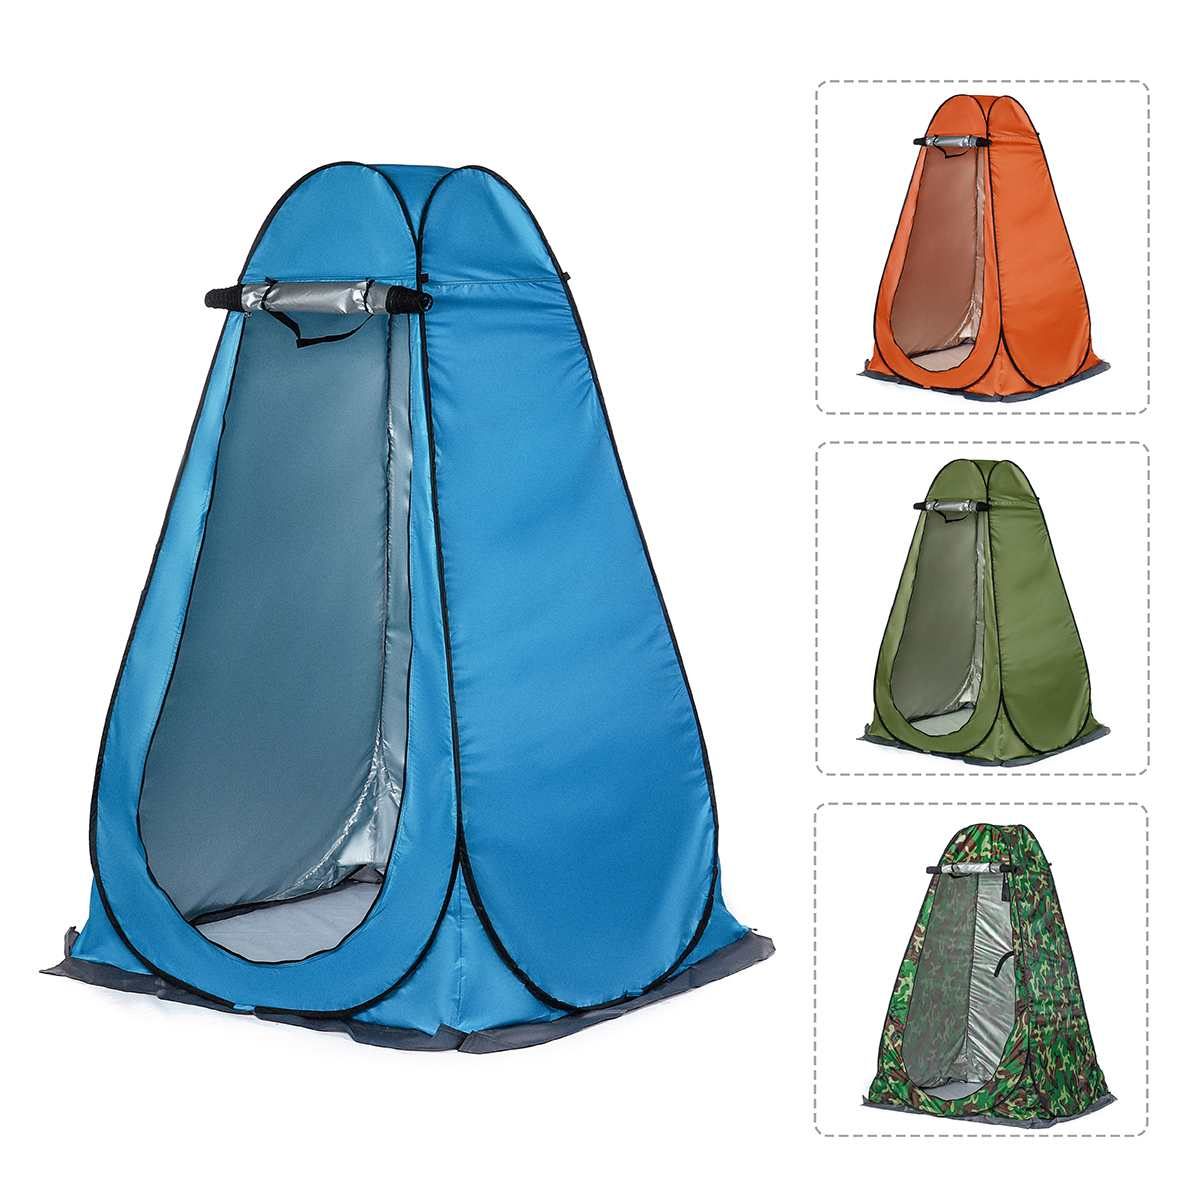 Portable UP Camping Outdoor Beach Bathing Shower Tent Toilet Changing Room